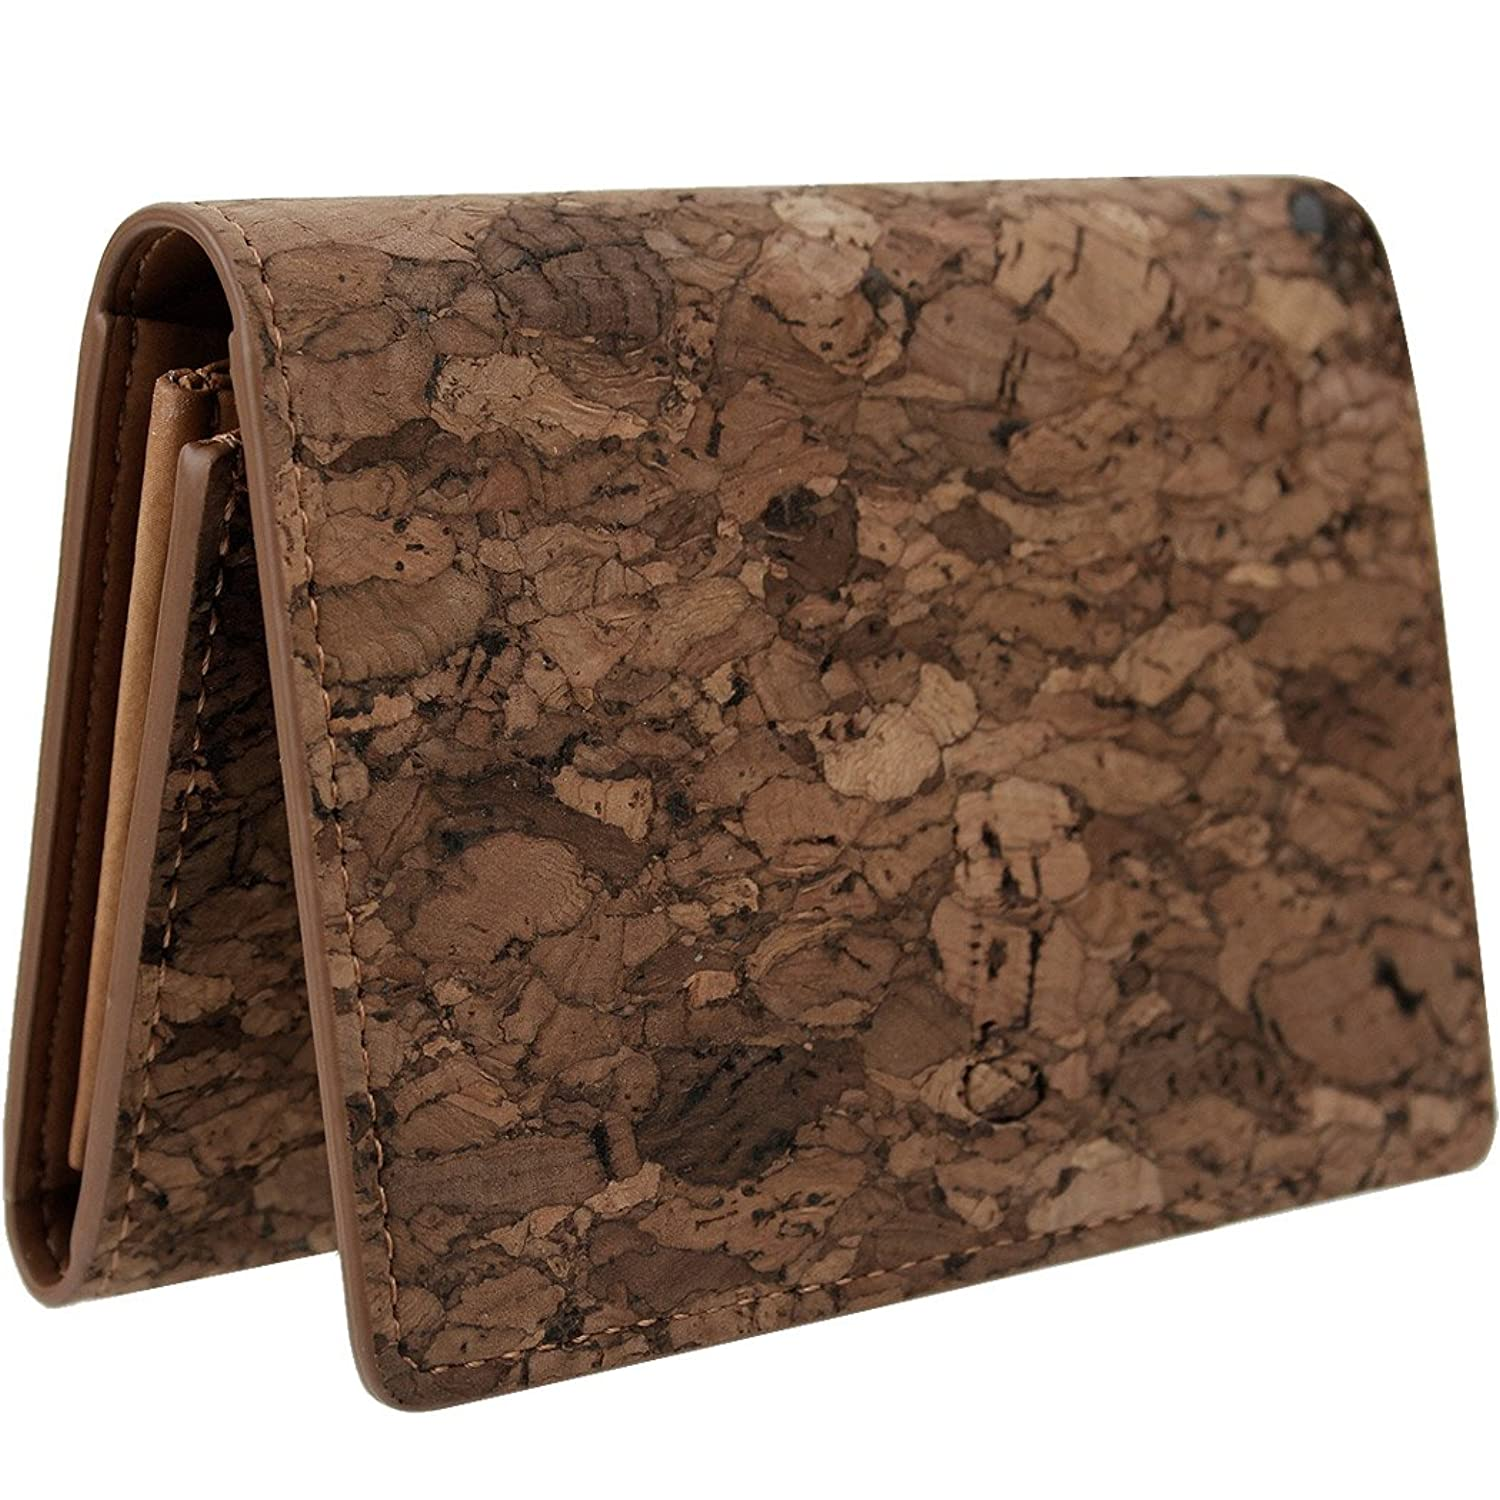 corco eco friendly tree leather cork shoulder bags for vegan women